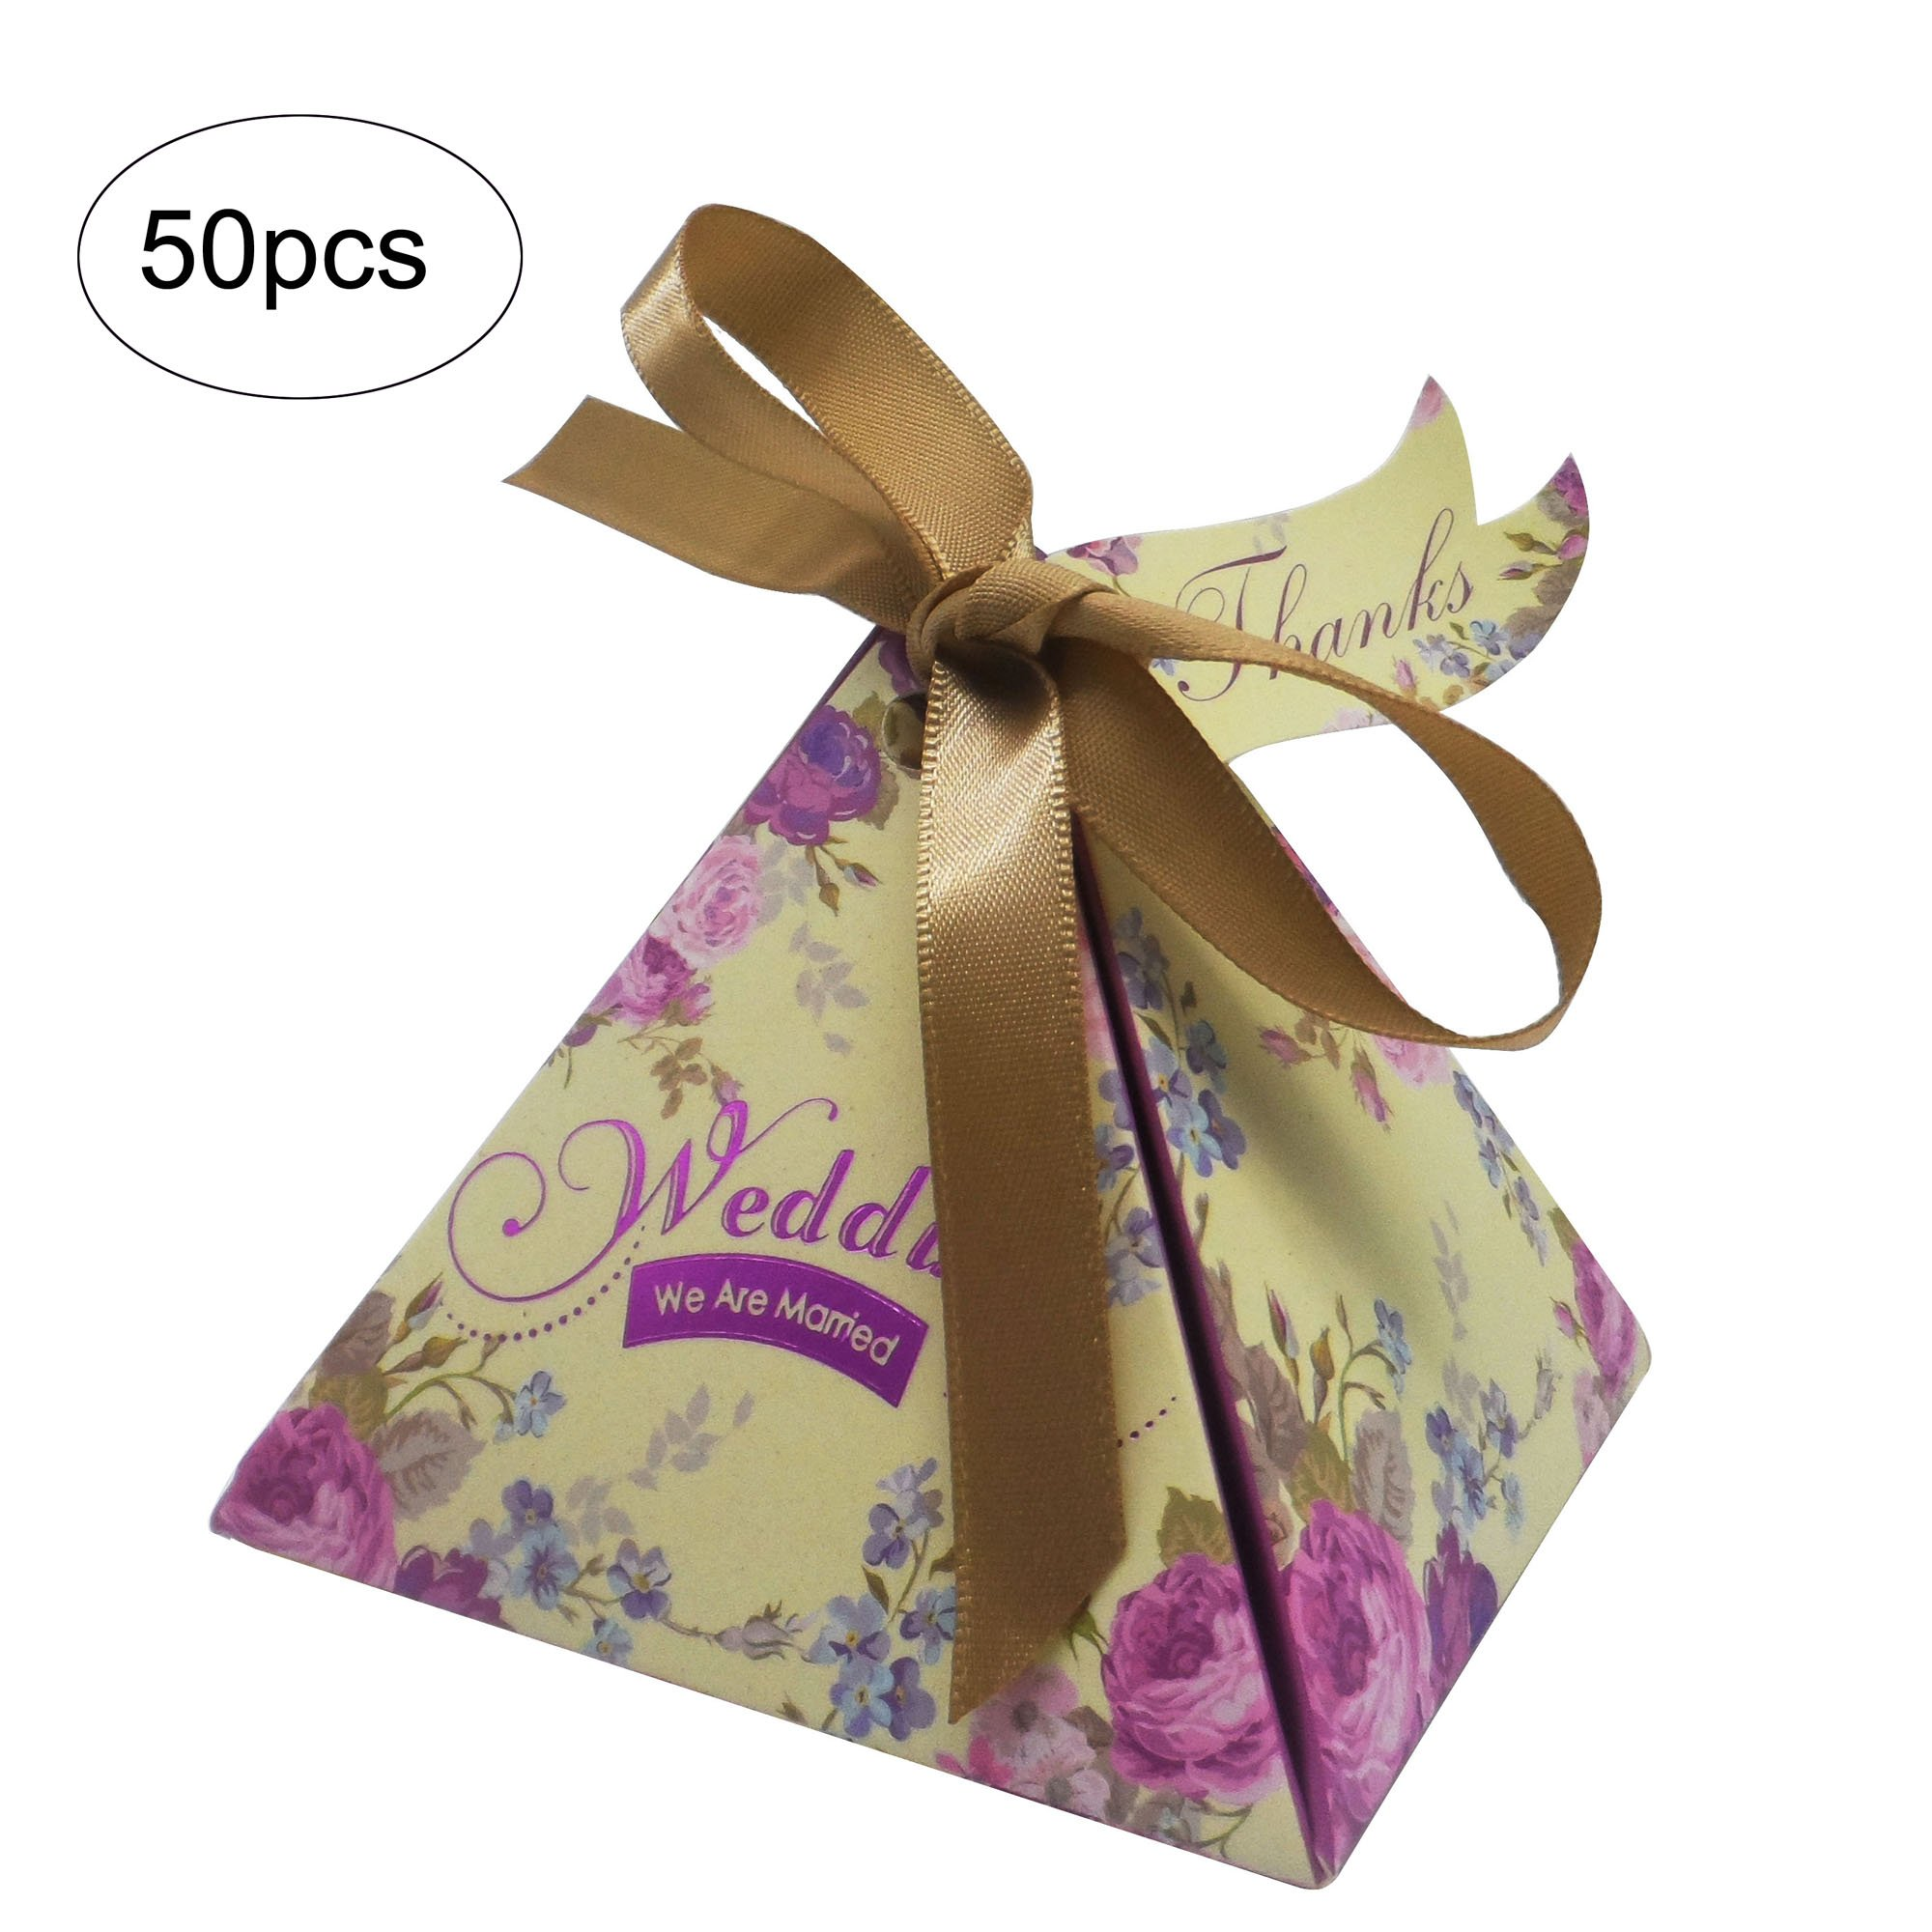 Moleya 50pcs Floral Wedding Candy Gift Boxes with Ribbons for Party Favors and Decoration, Purple